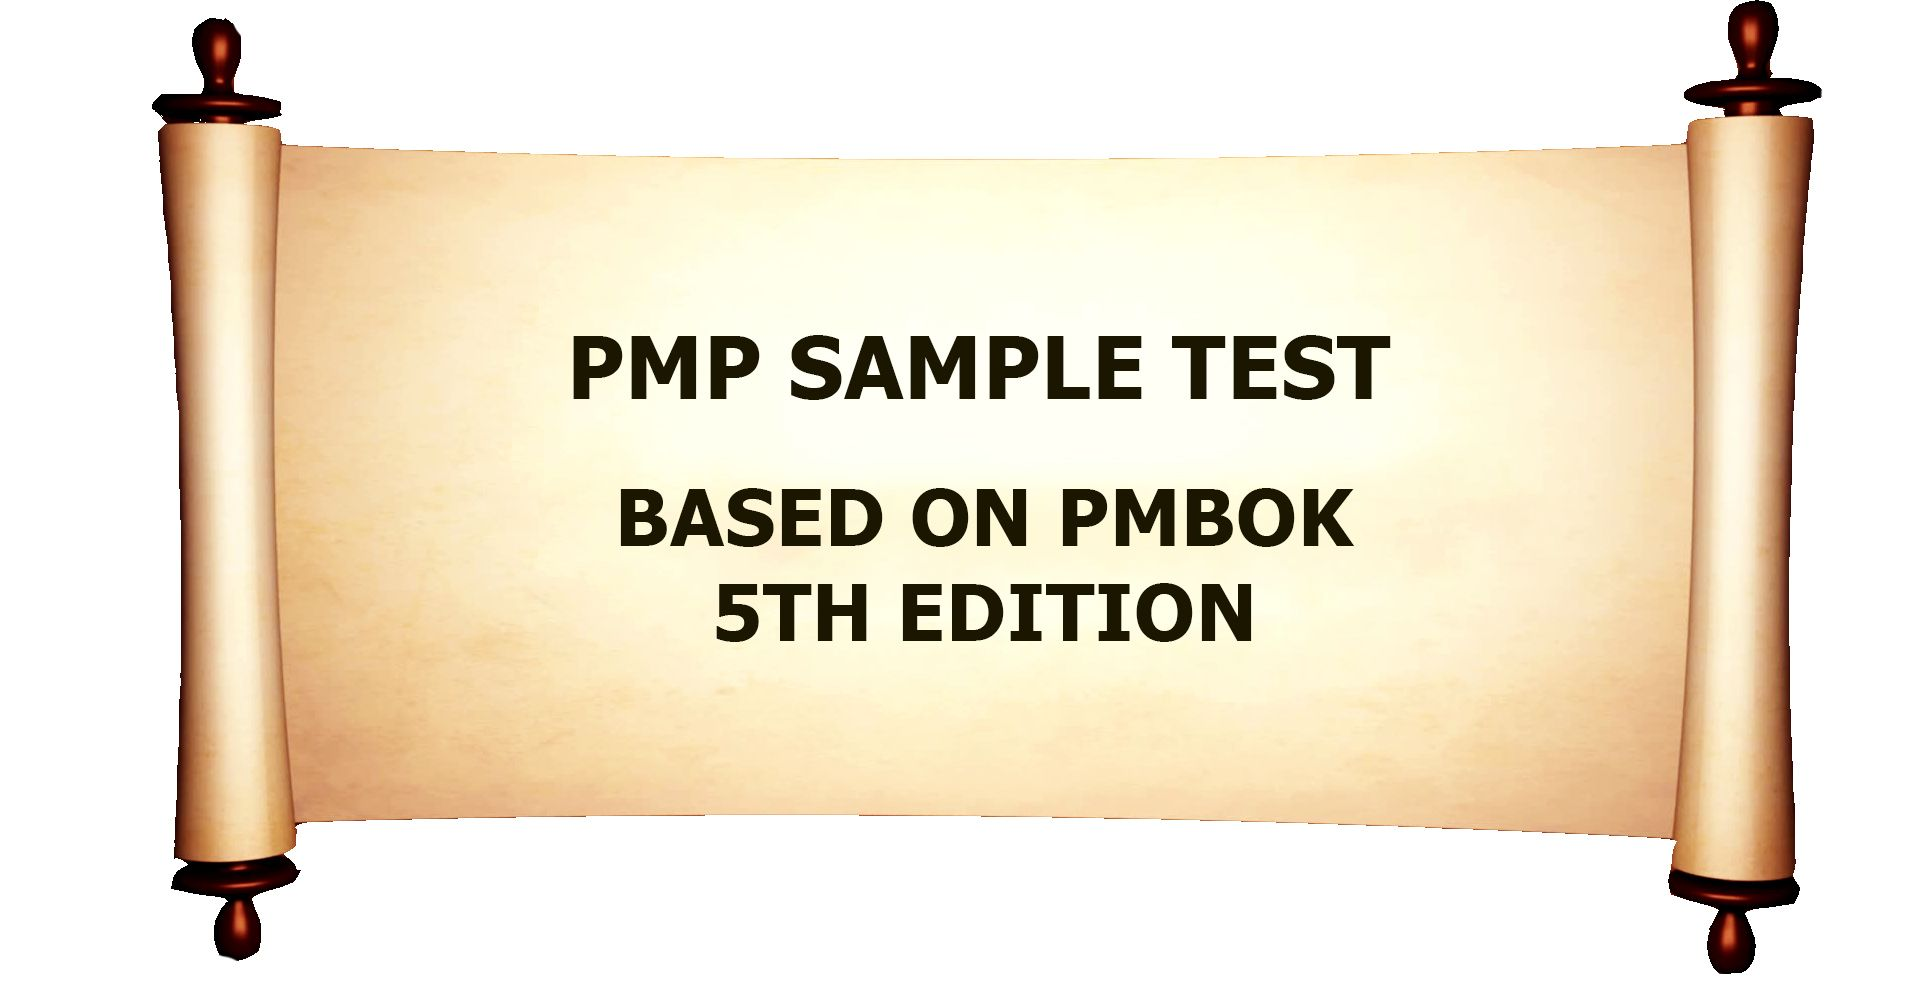 200 free practice questions for pmp exam based on pmbok 5 pmp 200 free practice questions for pmp exam based on pmbok 5 1betcityfo Choice Image